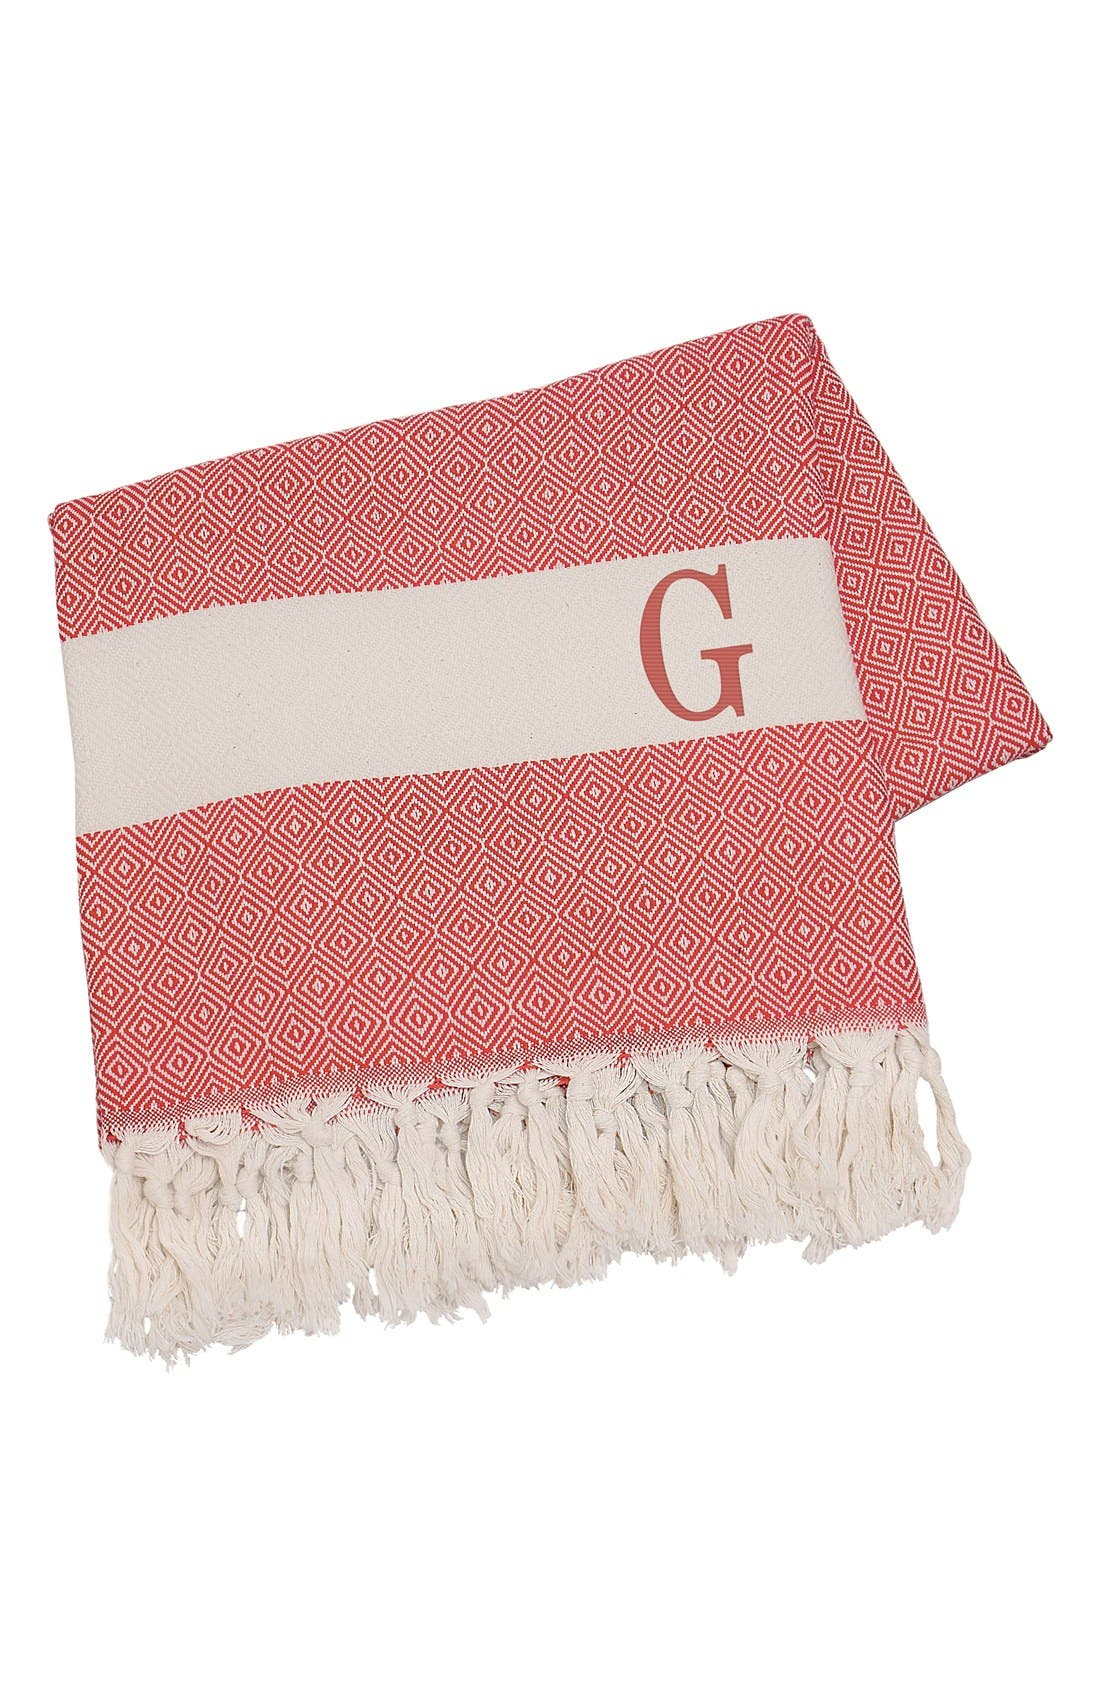 Cathy's Concepts Monogram Turkish Cotton Throw